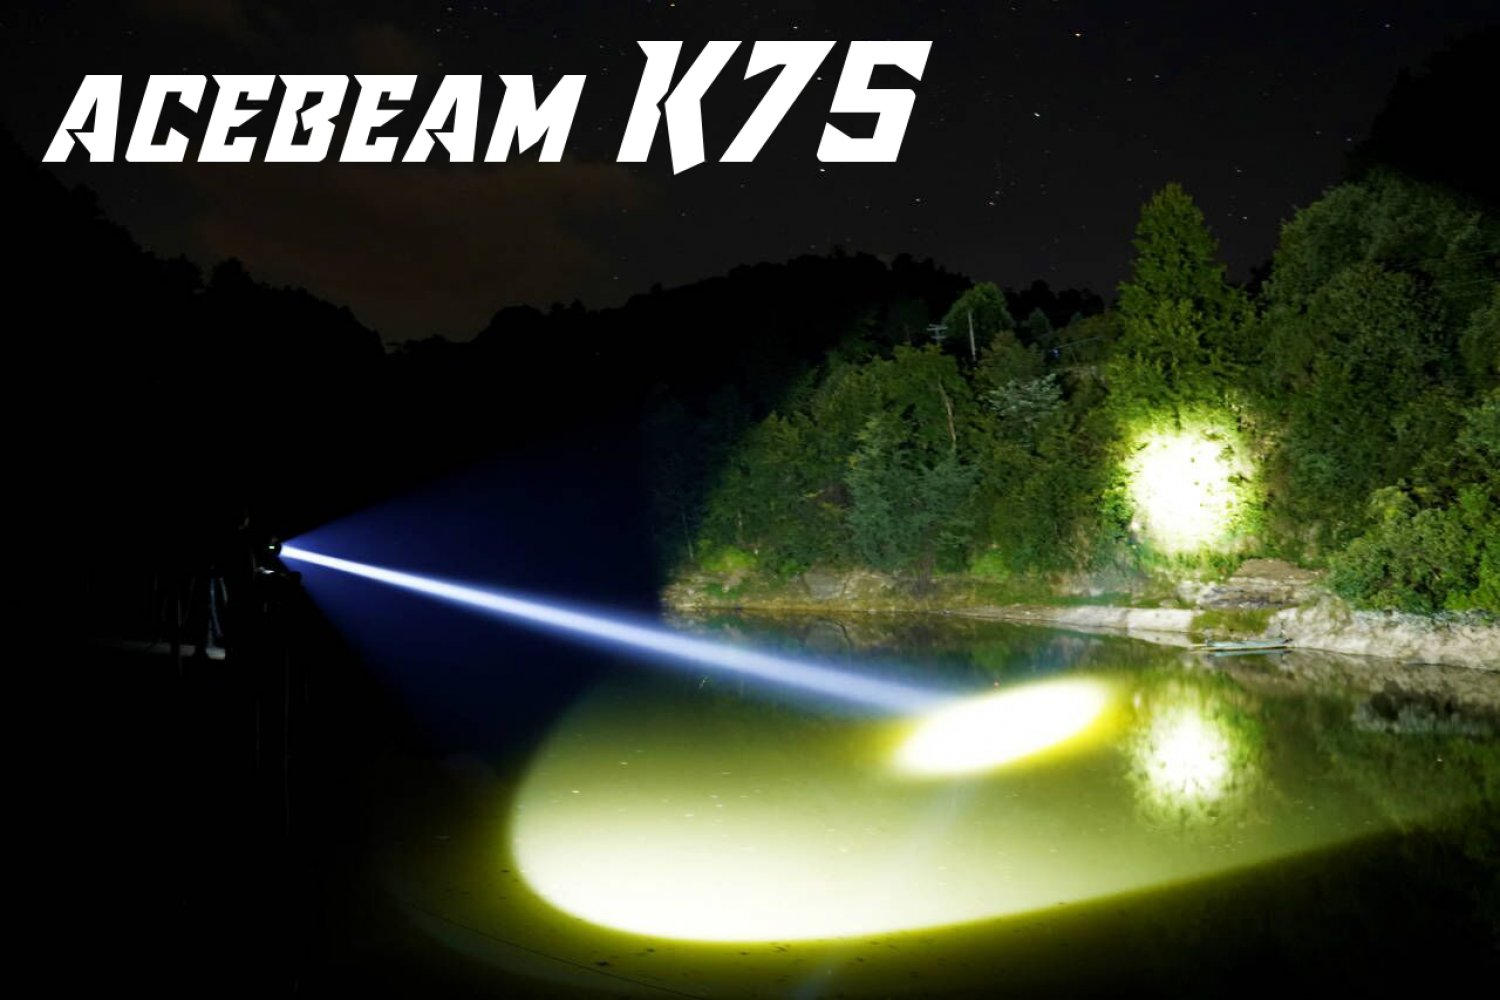 Acebeam K75 - LED Thrower mit 2,5 km Leuchtdistanz